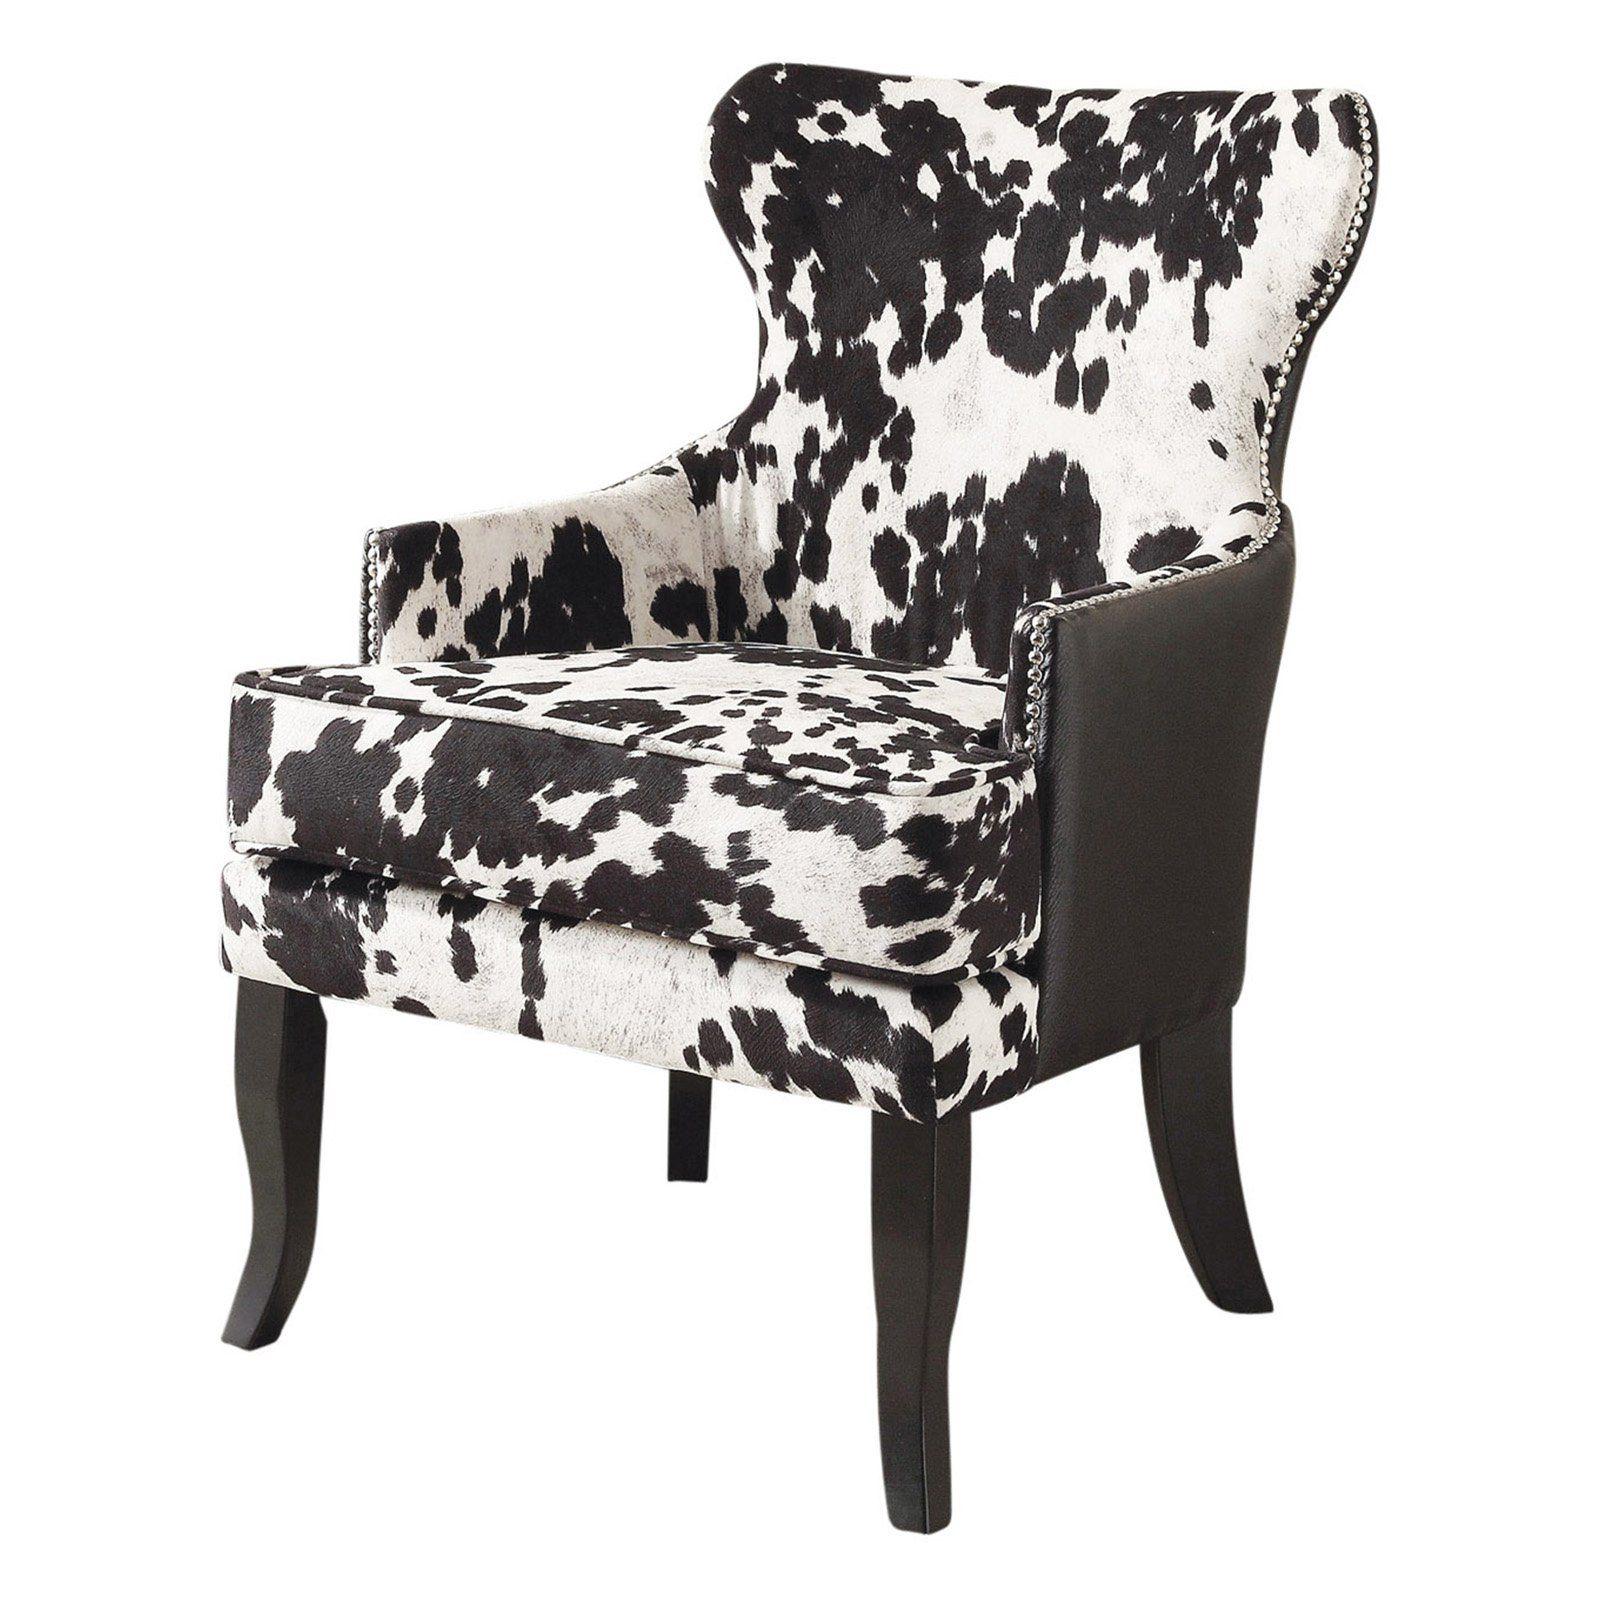 !nspire Faux Cow Hide Accent Chair with Stud Detail from